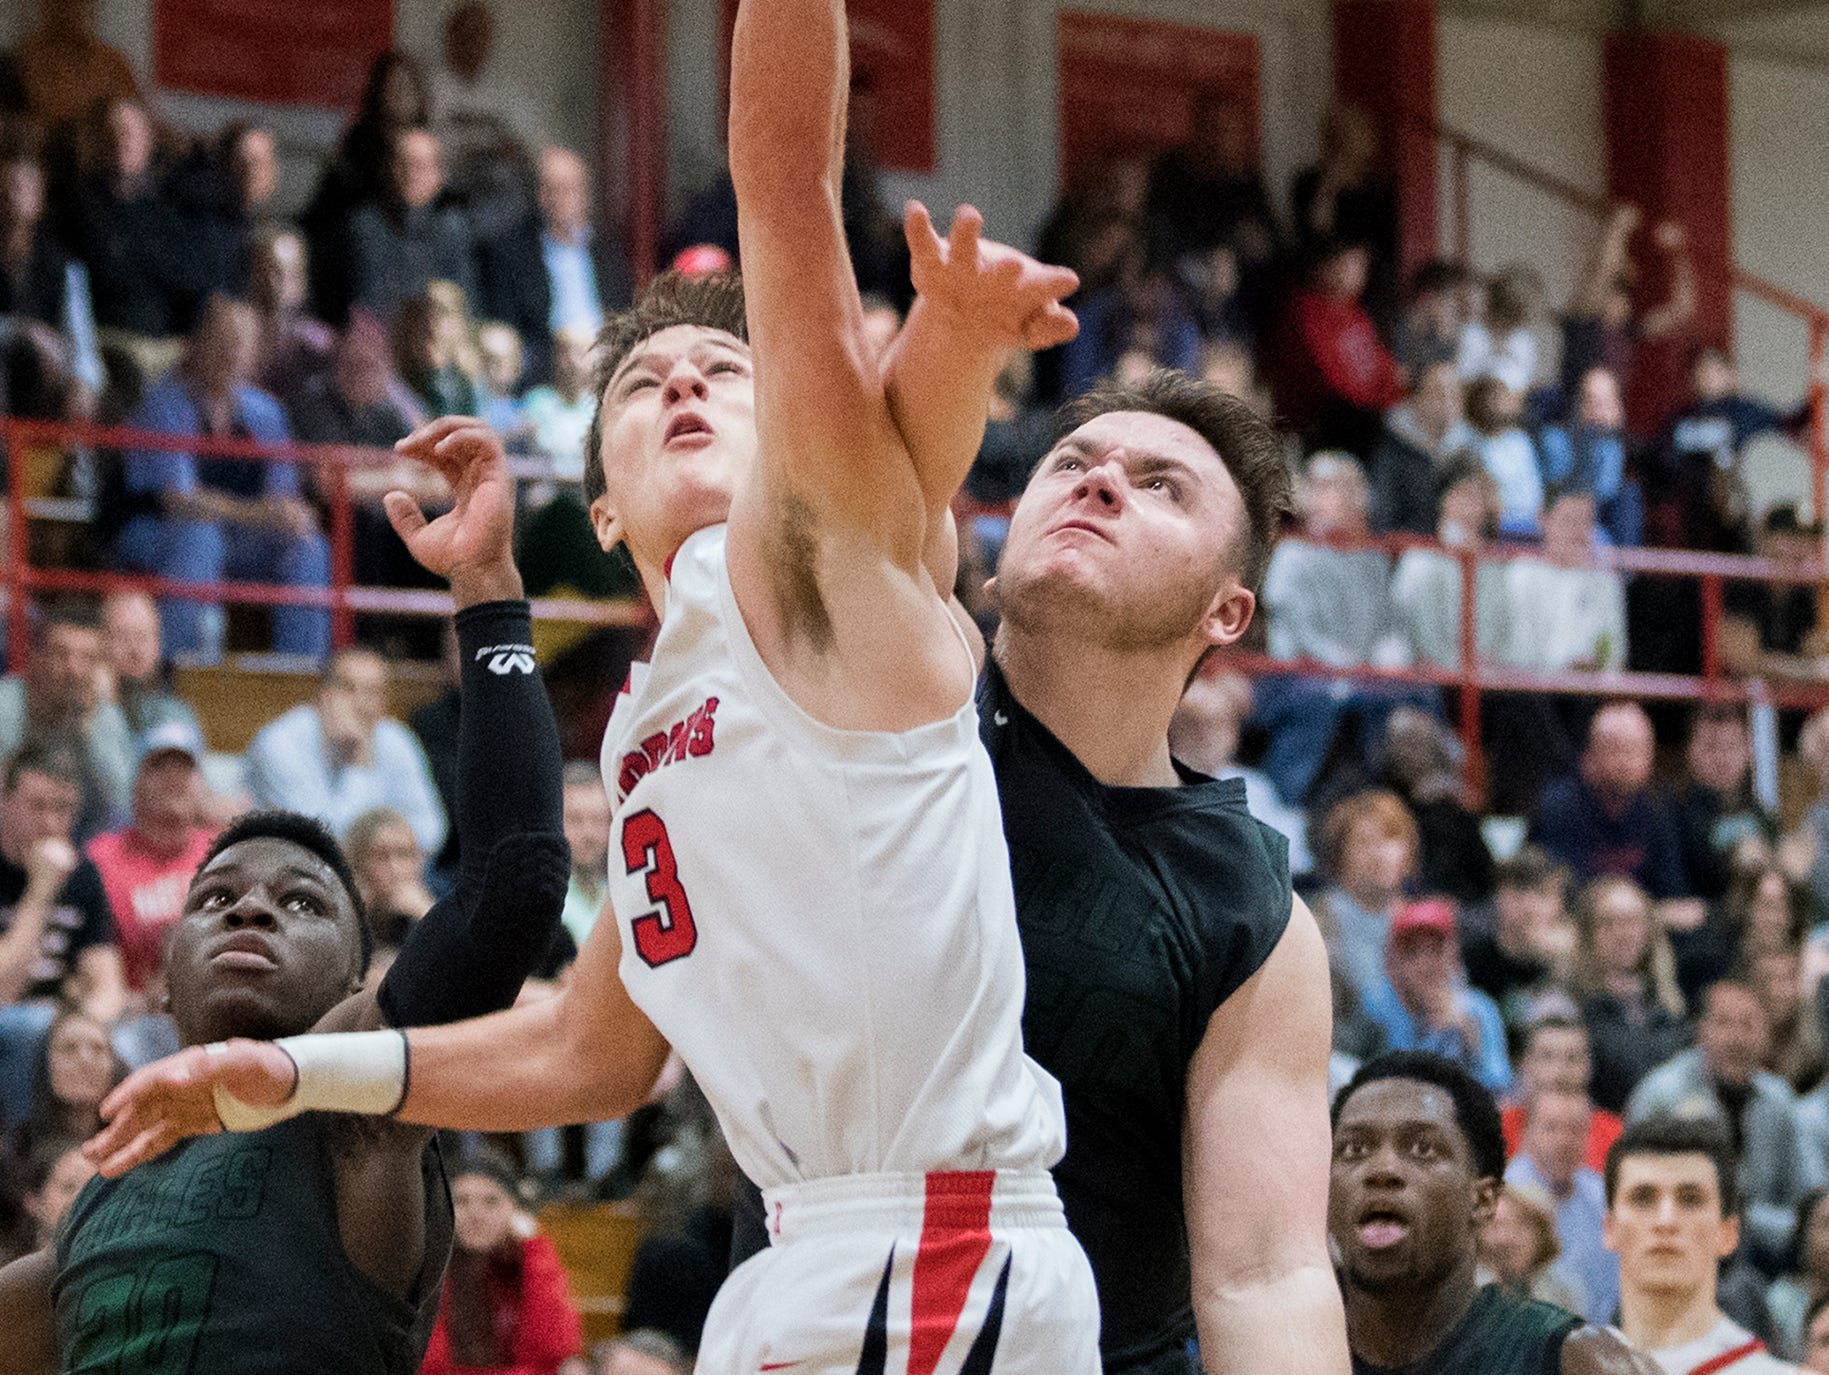 Haddonfield's Mike DePersia (3) attempts a shot against West Deptford Friday, March 1, 2019 at Cherry Hill High School East in Cherry Hill, N.J. Haddonfield won 51-30.